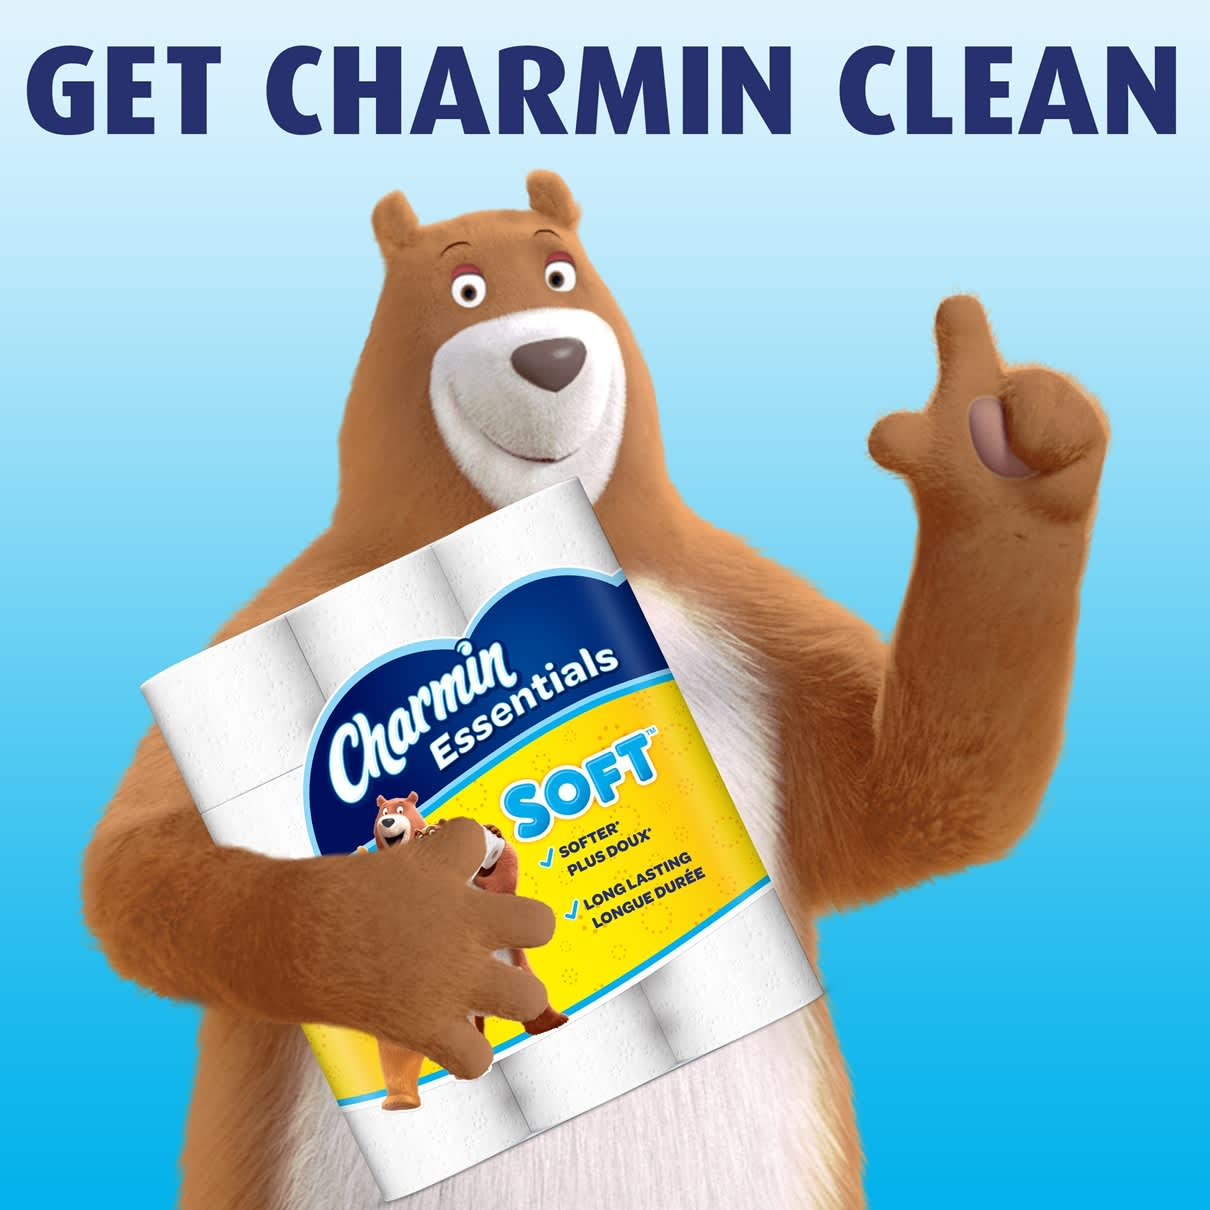 Clean better with essential soft toilet paper